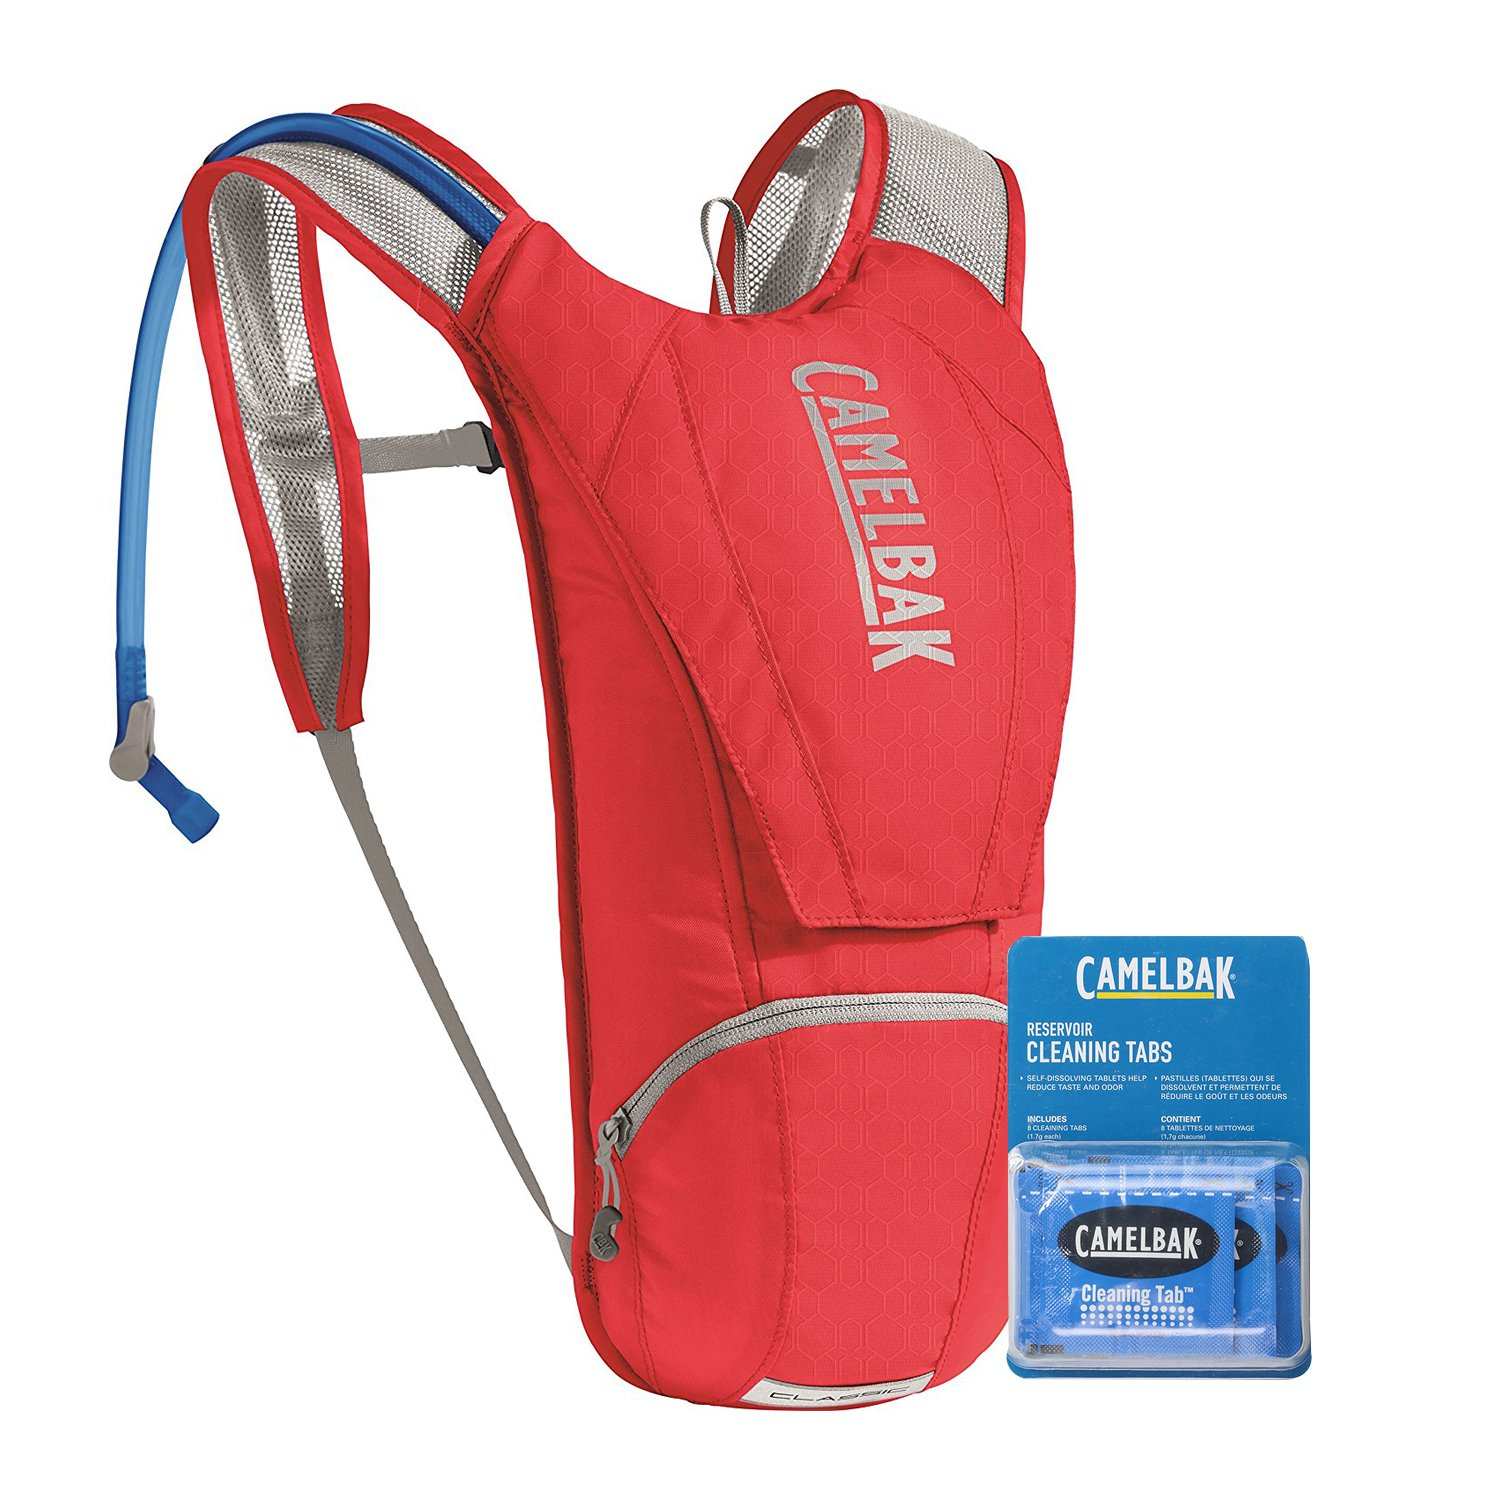 CamelBak Classic Crux Reservoir Hydration Pack Backpack 2.5 L/85 oz Bundle with Camelbak Cleaning Tablets - (8 Pack) (Racing Red/Silver) by Camel_Bak